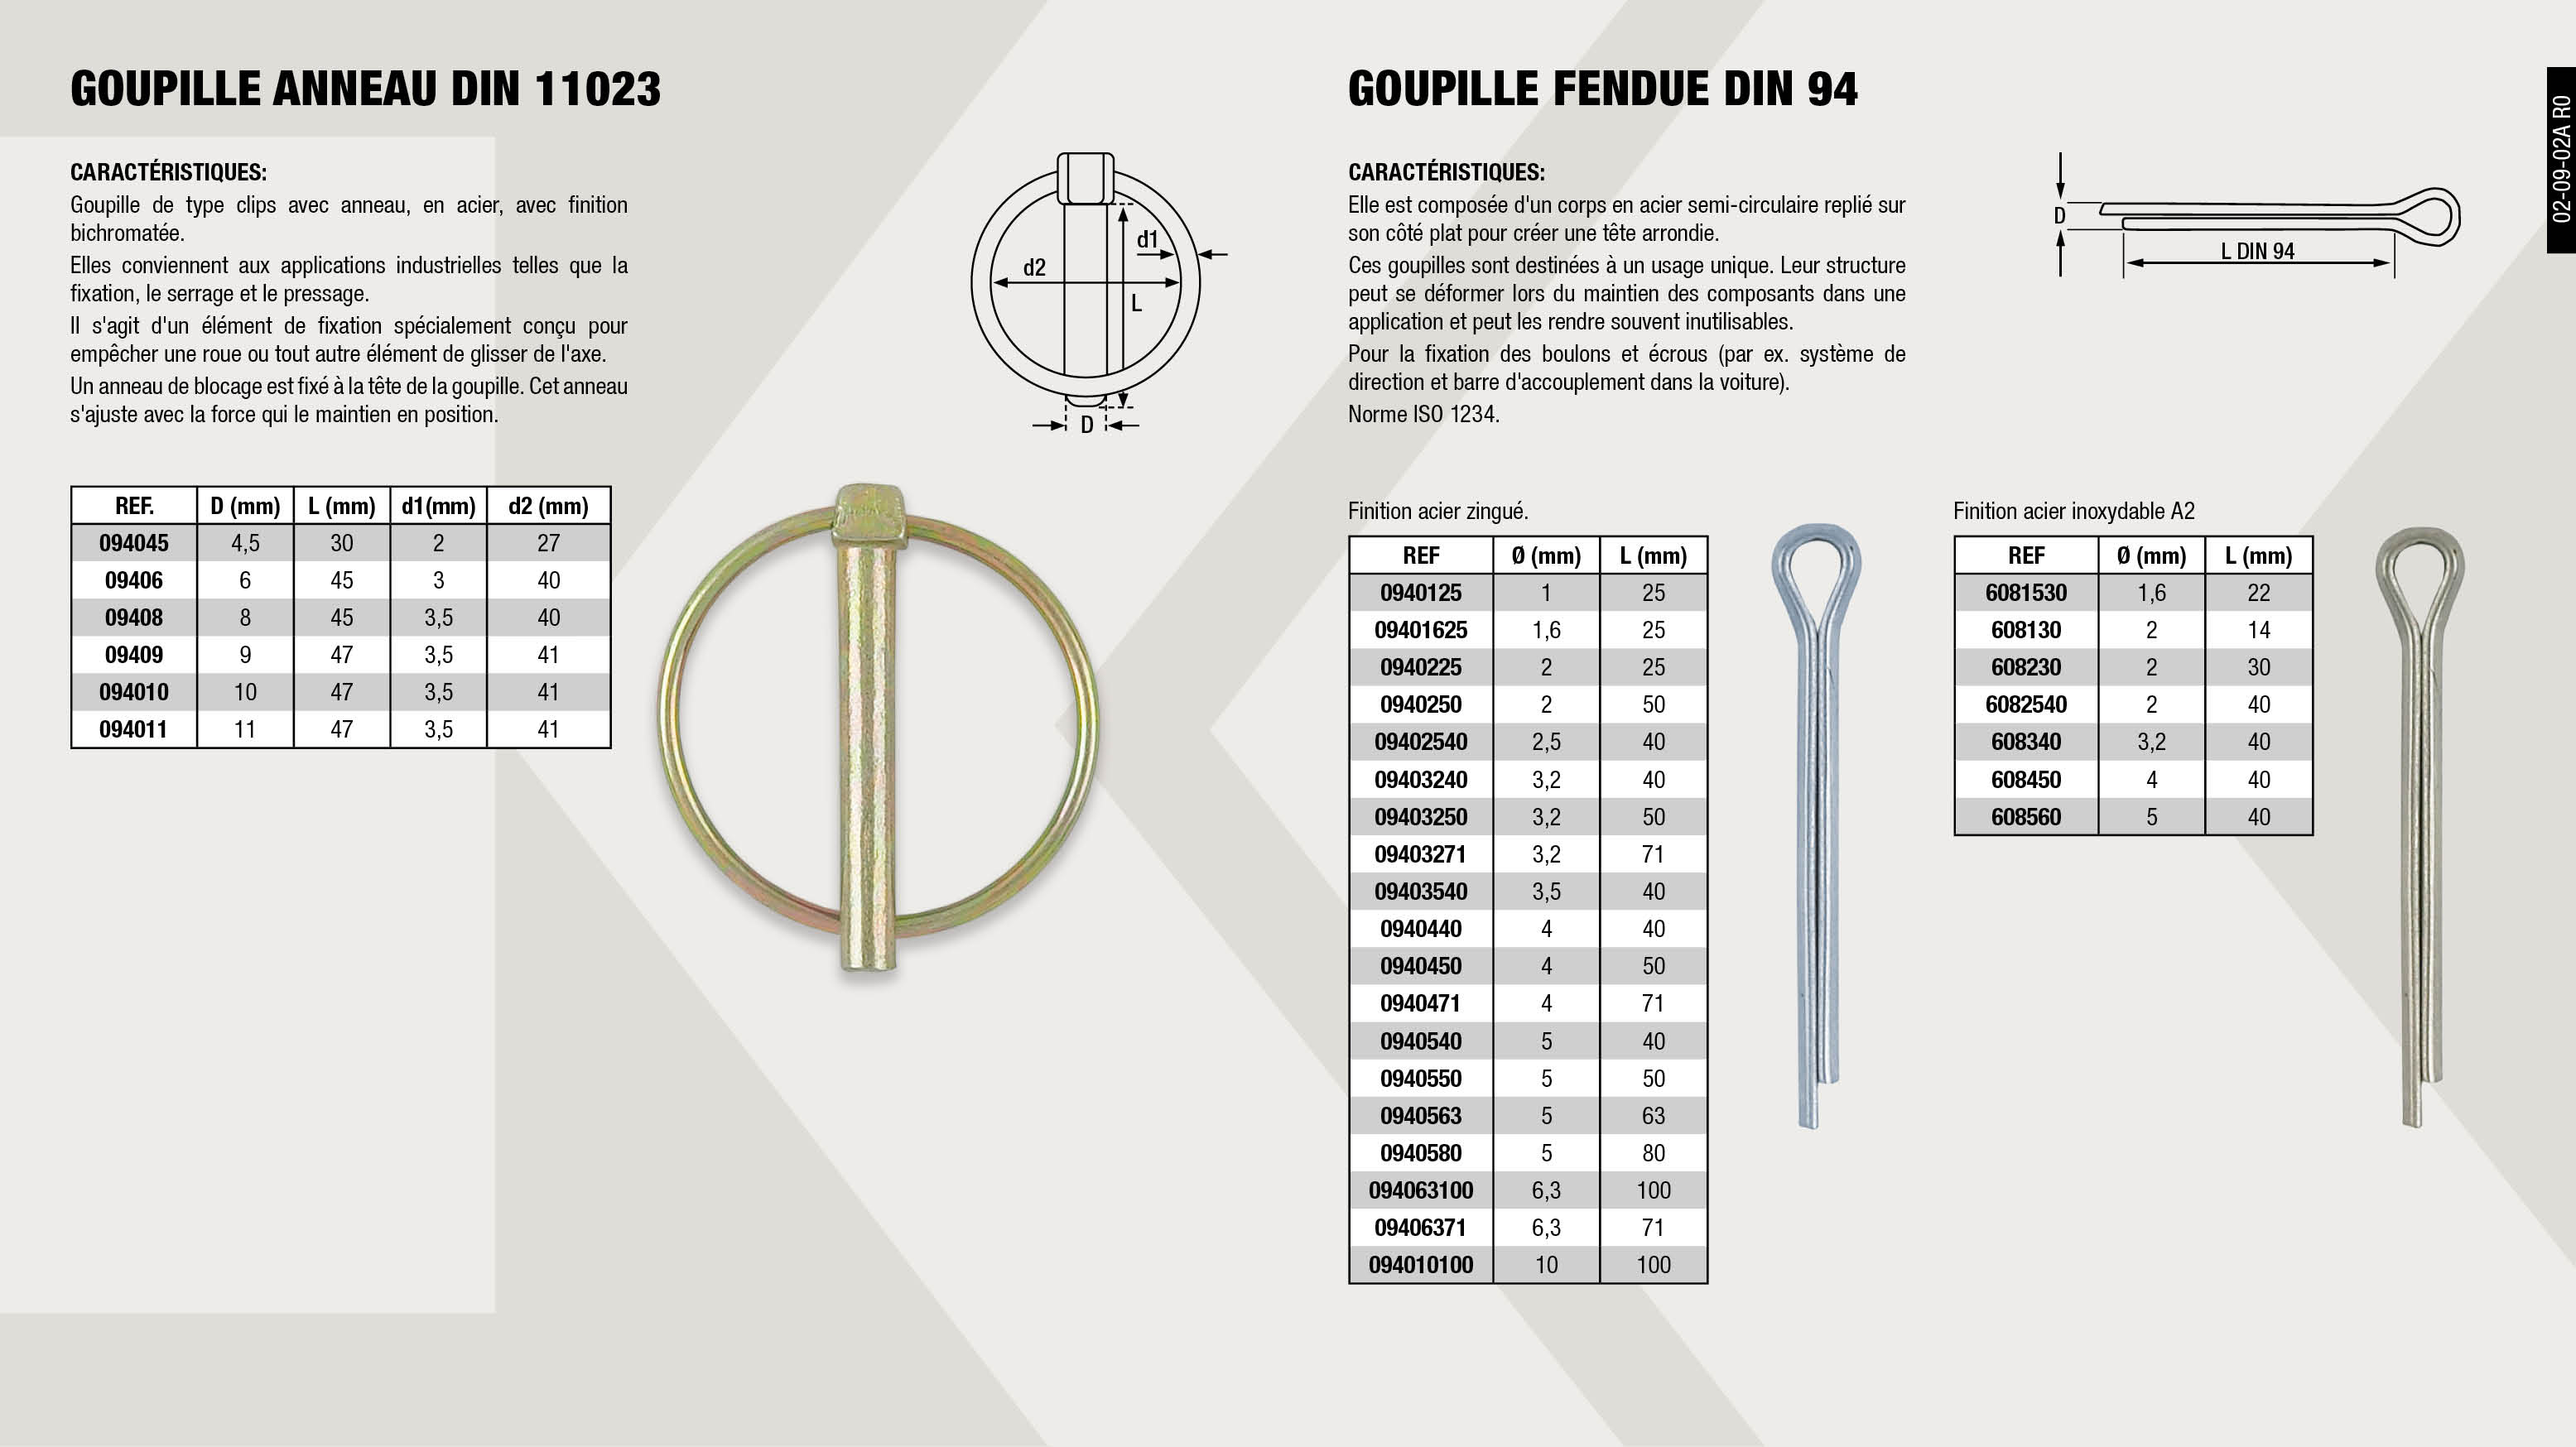 RONDELLE AXES DIN 6799 24MM                                 ,  									RONDELLE AXES DIN 6799 6MM                                  ,  									RONDELLE AXES DIN 6799 8MM                                  ,  									RONDELLE EVENTAIL DIN 6798 A 7,4                            ,  									RONDELLE EVENTAIL DIN 6798 A 4,3                            ,  									RONDELLE AXES DIN 6799 15MM                                 ,  									RONDELLE EVENTAIL DIN 6798 A 6,4                            ,  									RONDELLE AXES DIN 6799 5MM                                  ,  									RONDELLE EVENTAIL DIN 6798 A 10,5                           ,  									RONDELLE EVENTAIL DIN 6798 A 15                             ,  									RONDELLE AXES DIN 6799 10MM                                 ,  									RONDELLE AXES DIN 6799 7MM                                  ,  									RONDELLE EVENTAIL DIN 6798 A 3                              ,  									RONDELLE AXES DIN 6799 19MM                                 ,  									RONDELLE AXES DIN 6799 4MM                                  ,  									RONDELLE EVENTAIL DIN 6798 A 13                             ,  									RONDELLE EVENTAIL DIN 6798 A 5                              ,  									RONDELLE AXES DIN 6799 9MM                                  ,  									RONDELLE AXES DIN 6799 12MM                                 ,  									RONDELLE EVENTAIL DIN 6798 A 8,2                            ,